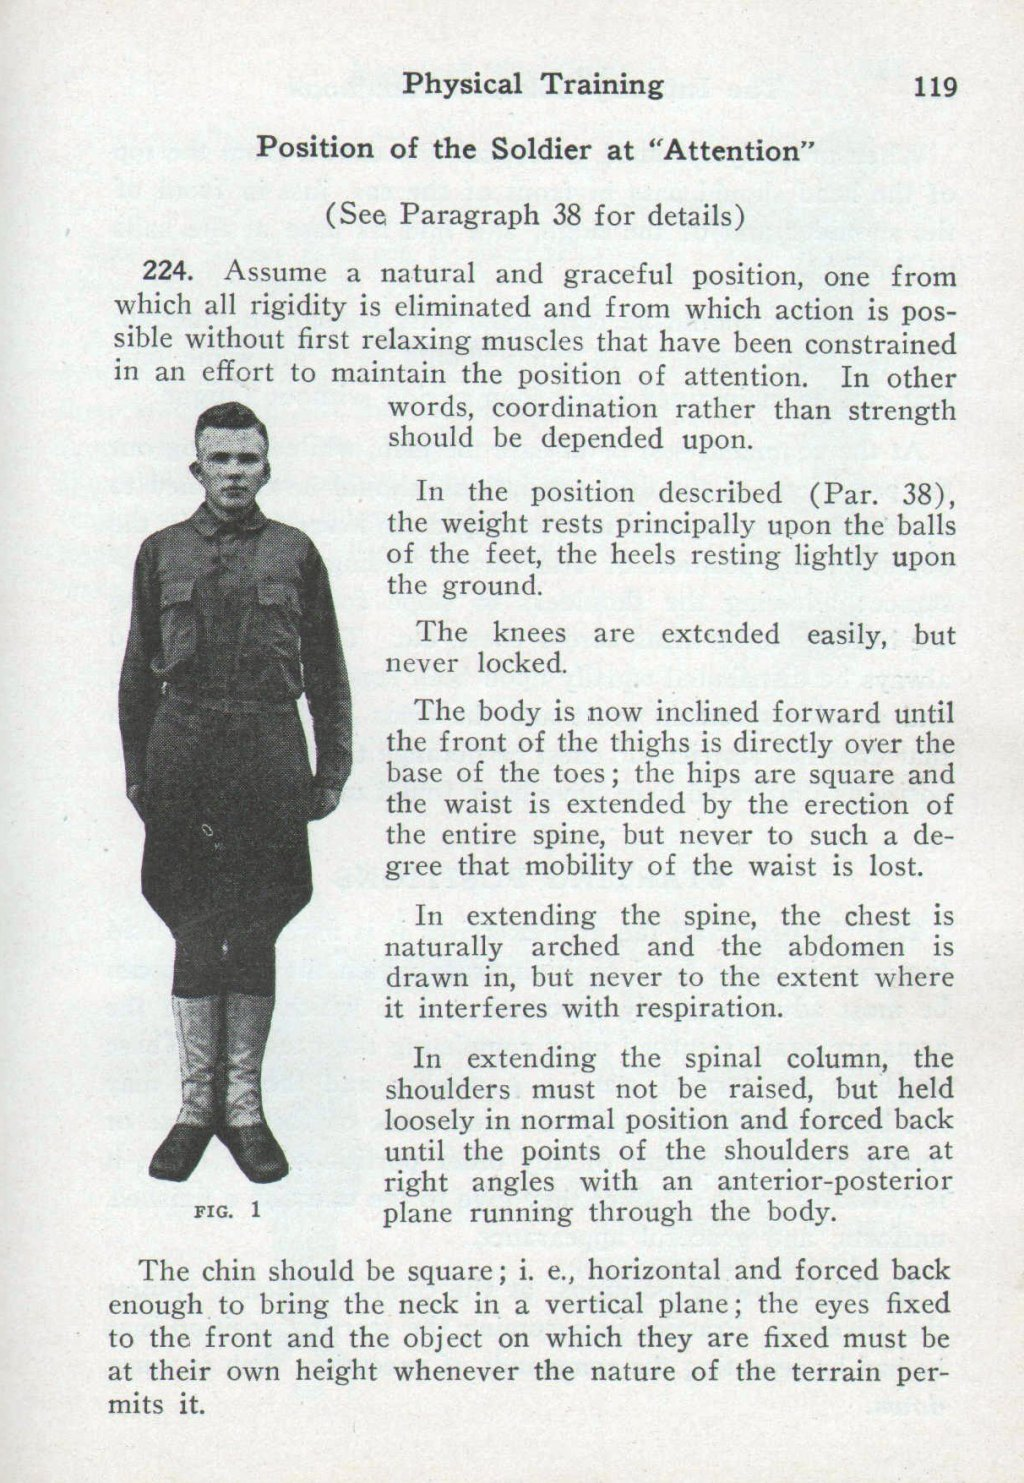 314th Infantry Regiment - Infantry Soldiers Handbook - Waldron - Page 119